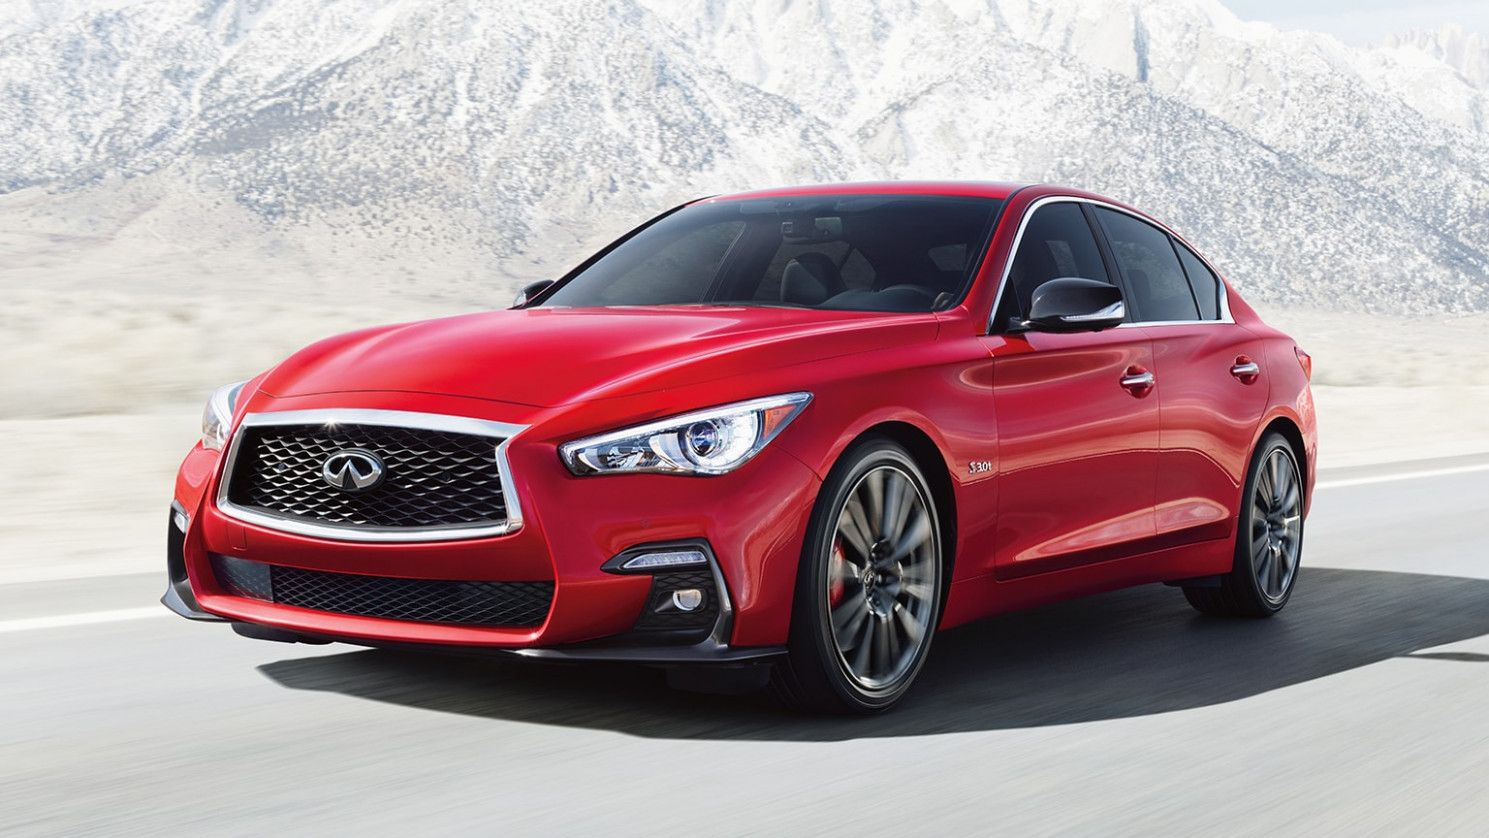 2020 Infiniti Q60 Red Sport Review And Release Date The 2020 Infiniti Q60 Red Sport 400 Is The High Performance Alternative Of Infiniti S Q60 Coupe Compared W Di 2020